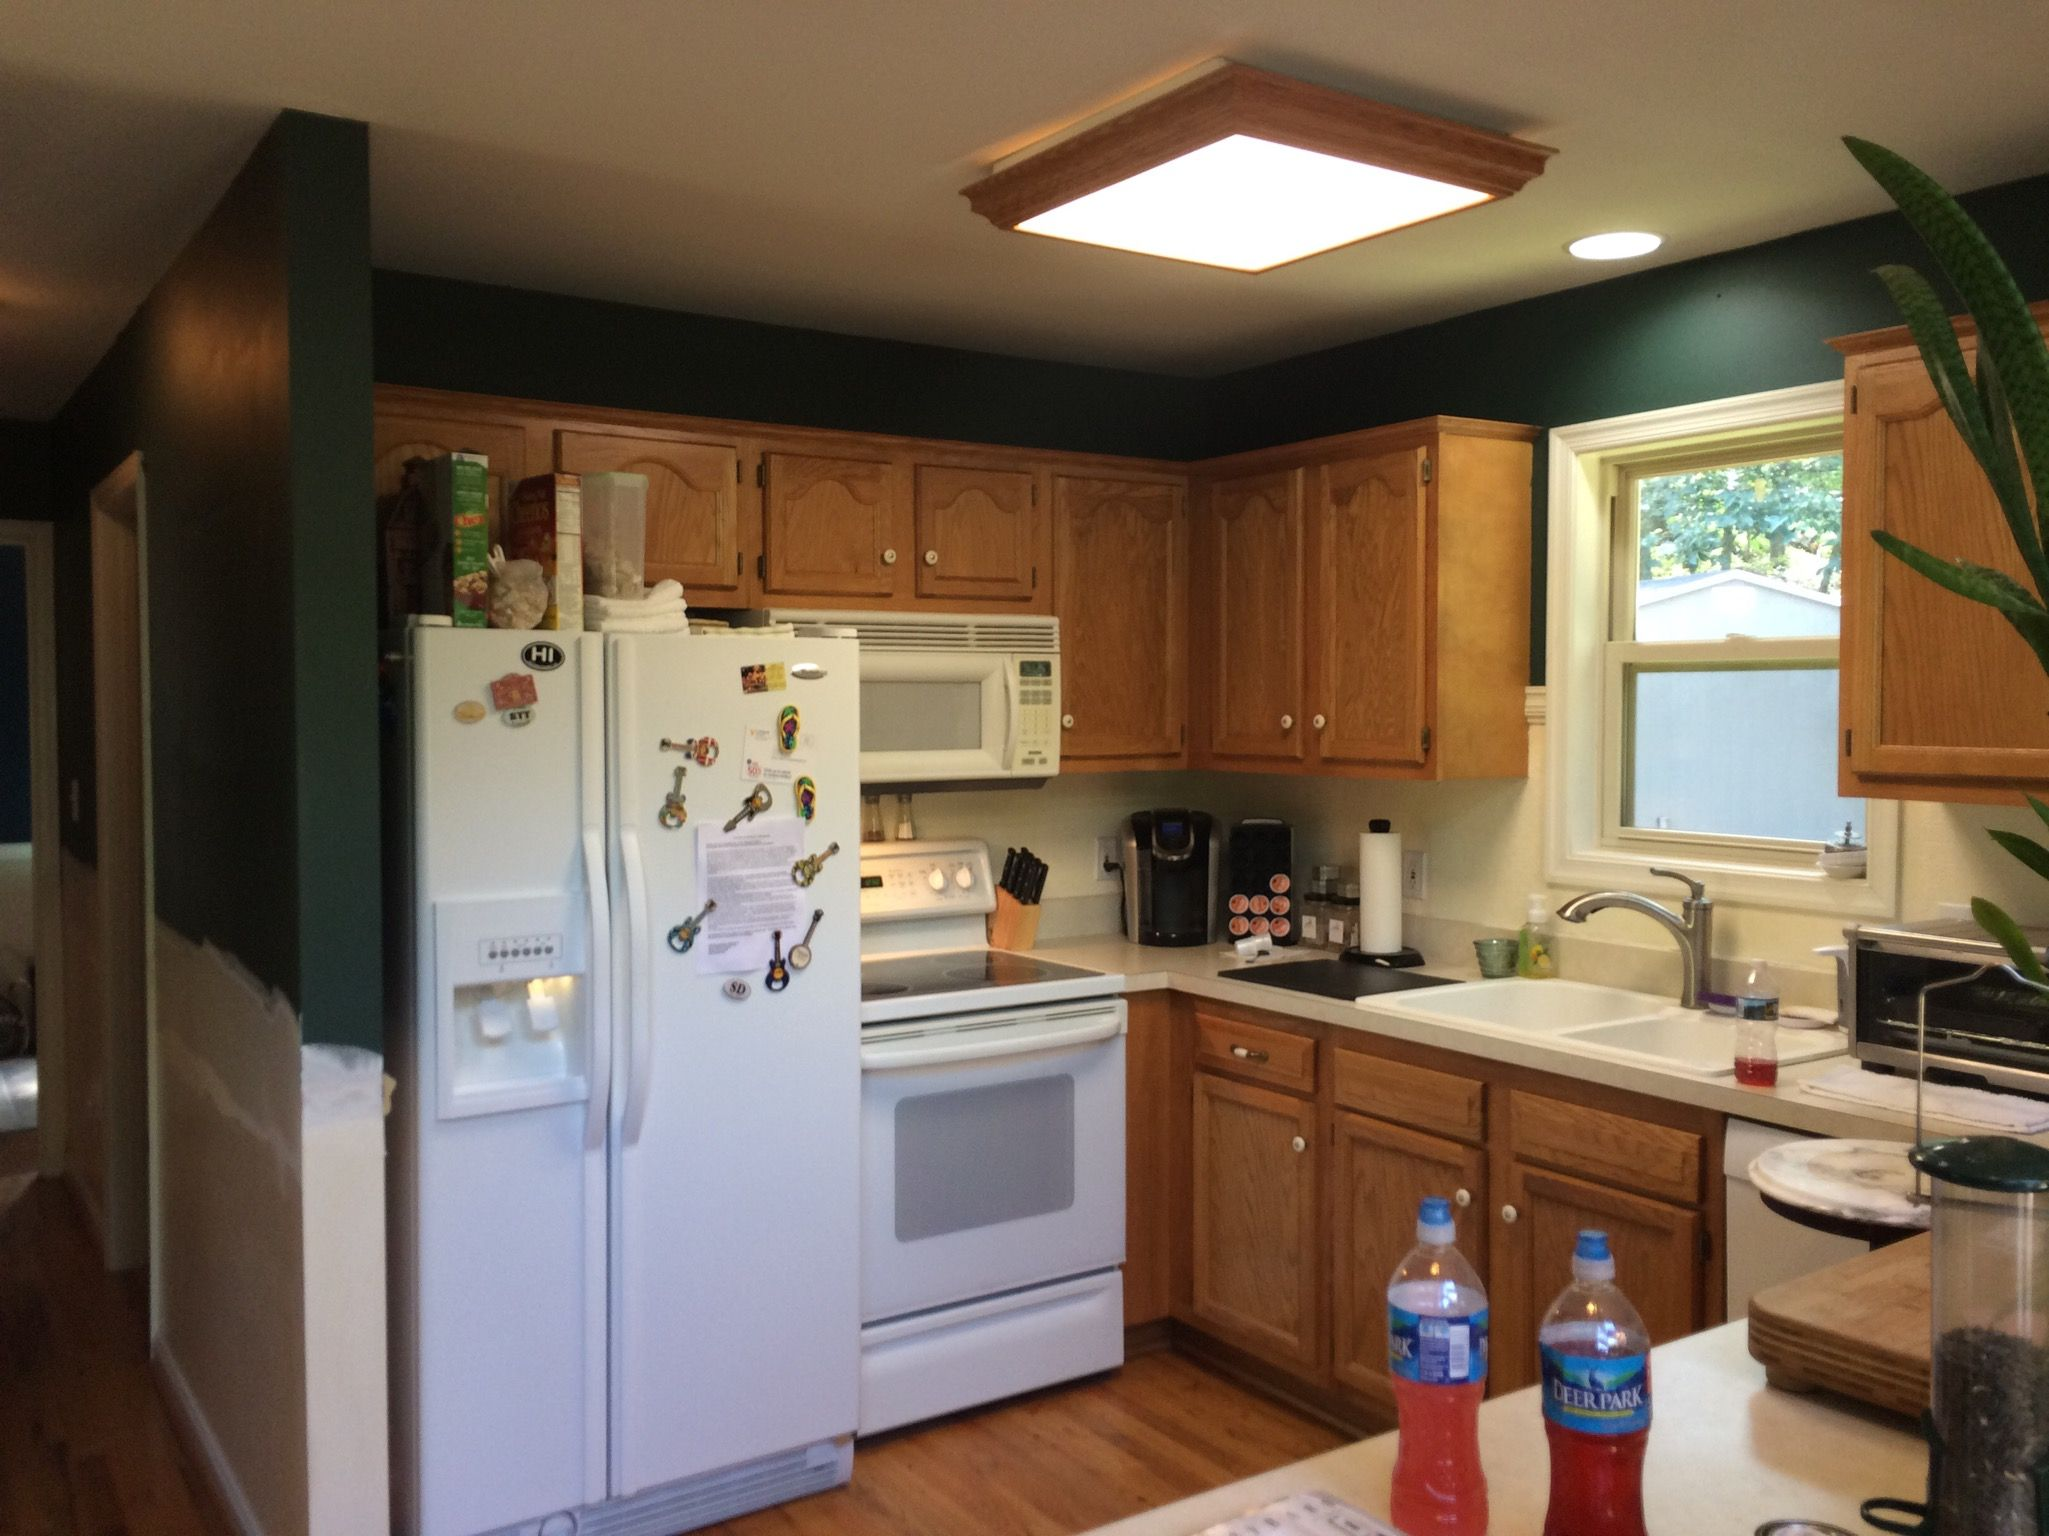 Before White Appliances Honey Oak And Hunter Green Walls Green Kitchen Walls Kitchen Remodel Green Kitchen